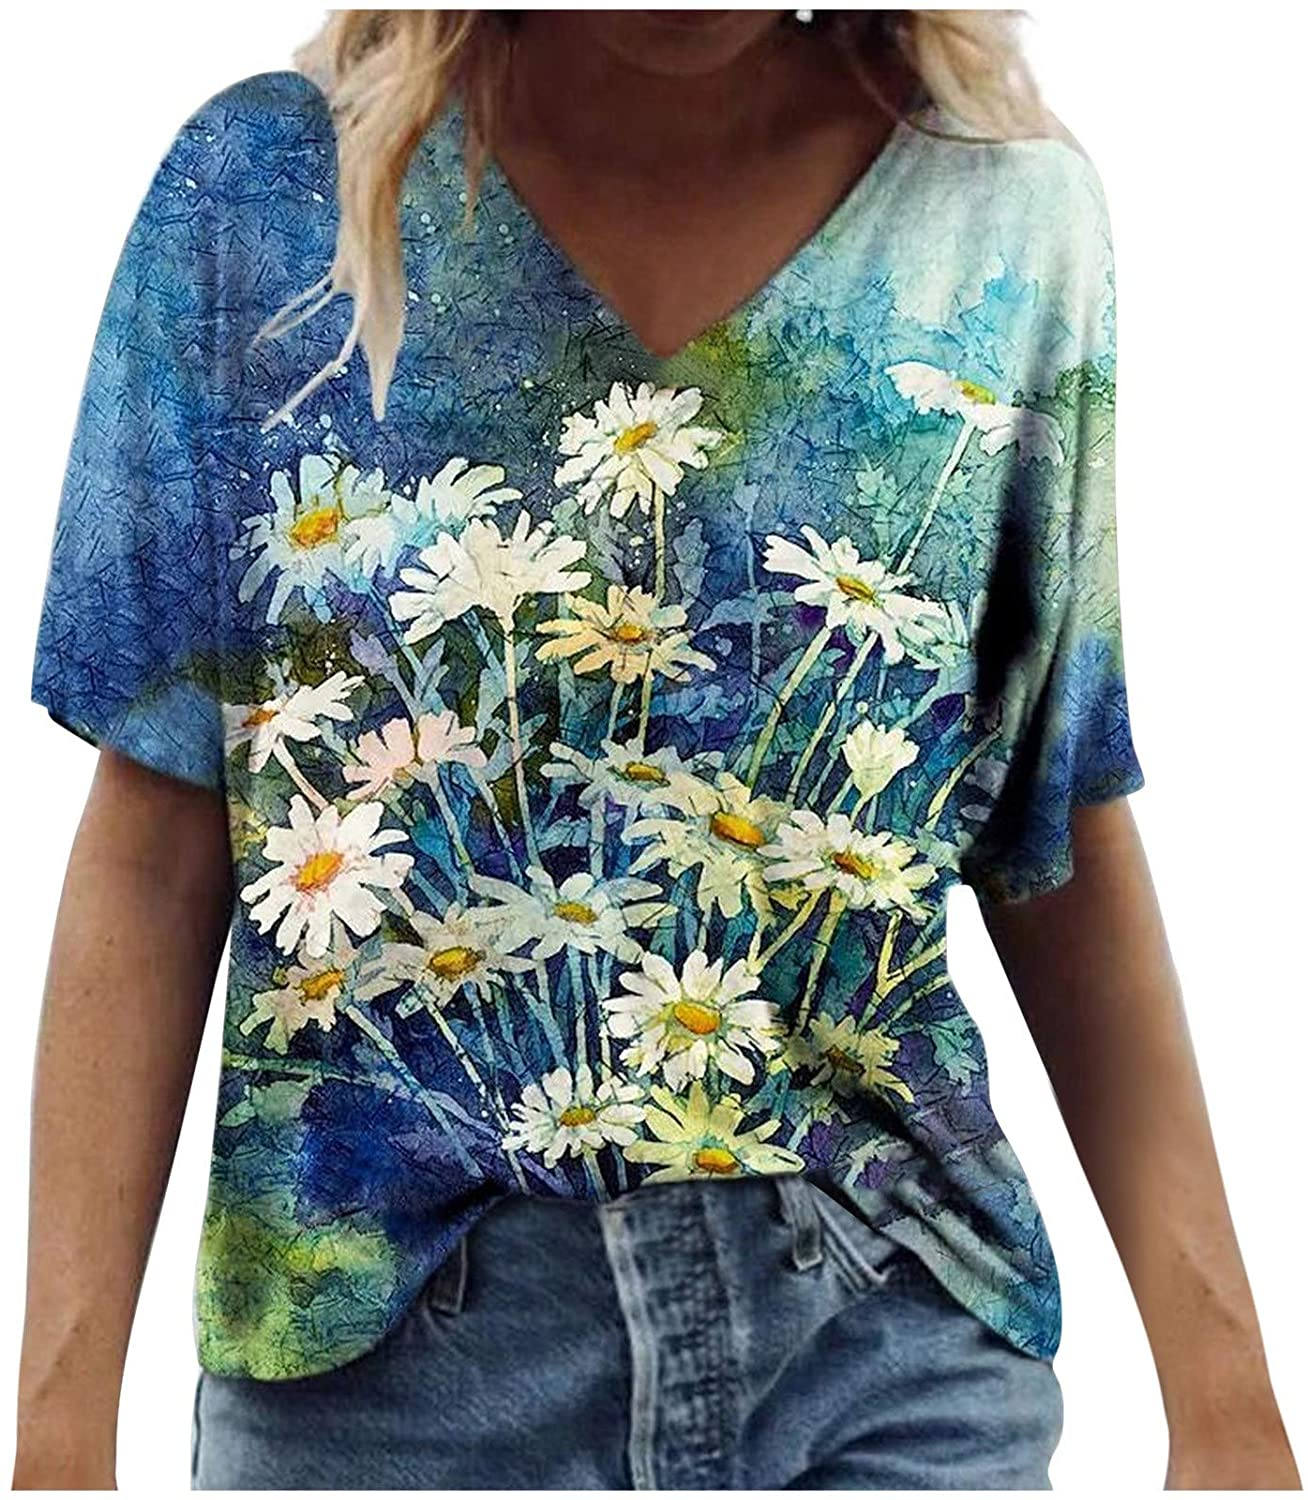 Shirts for Womens, Womens Summer T-Shirt Floral Printed Casual Blouse Color Short Sleeve Shirts Womens Tops